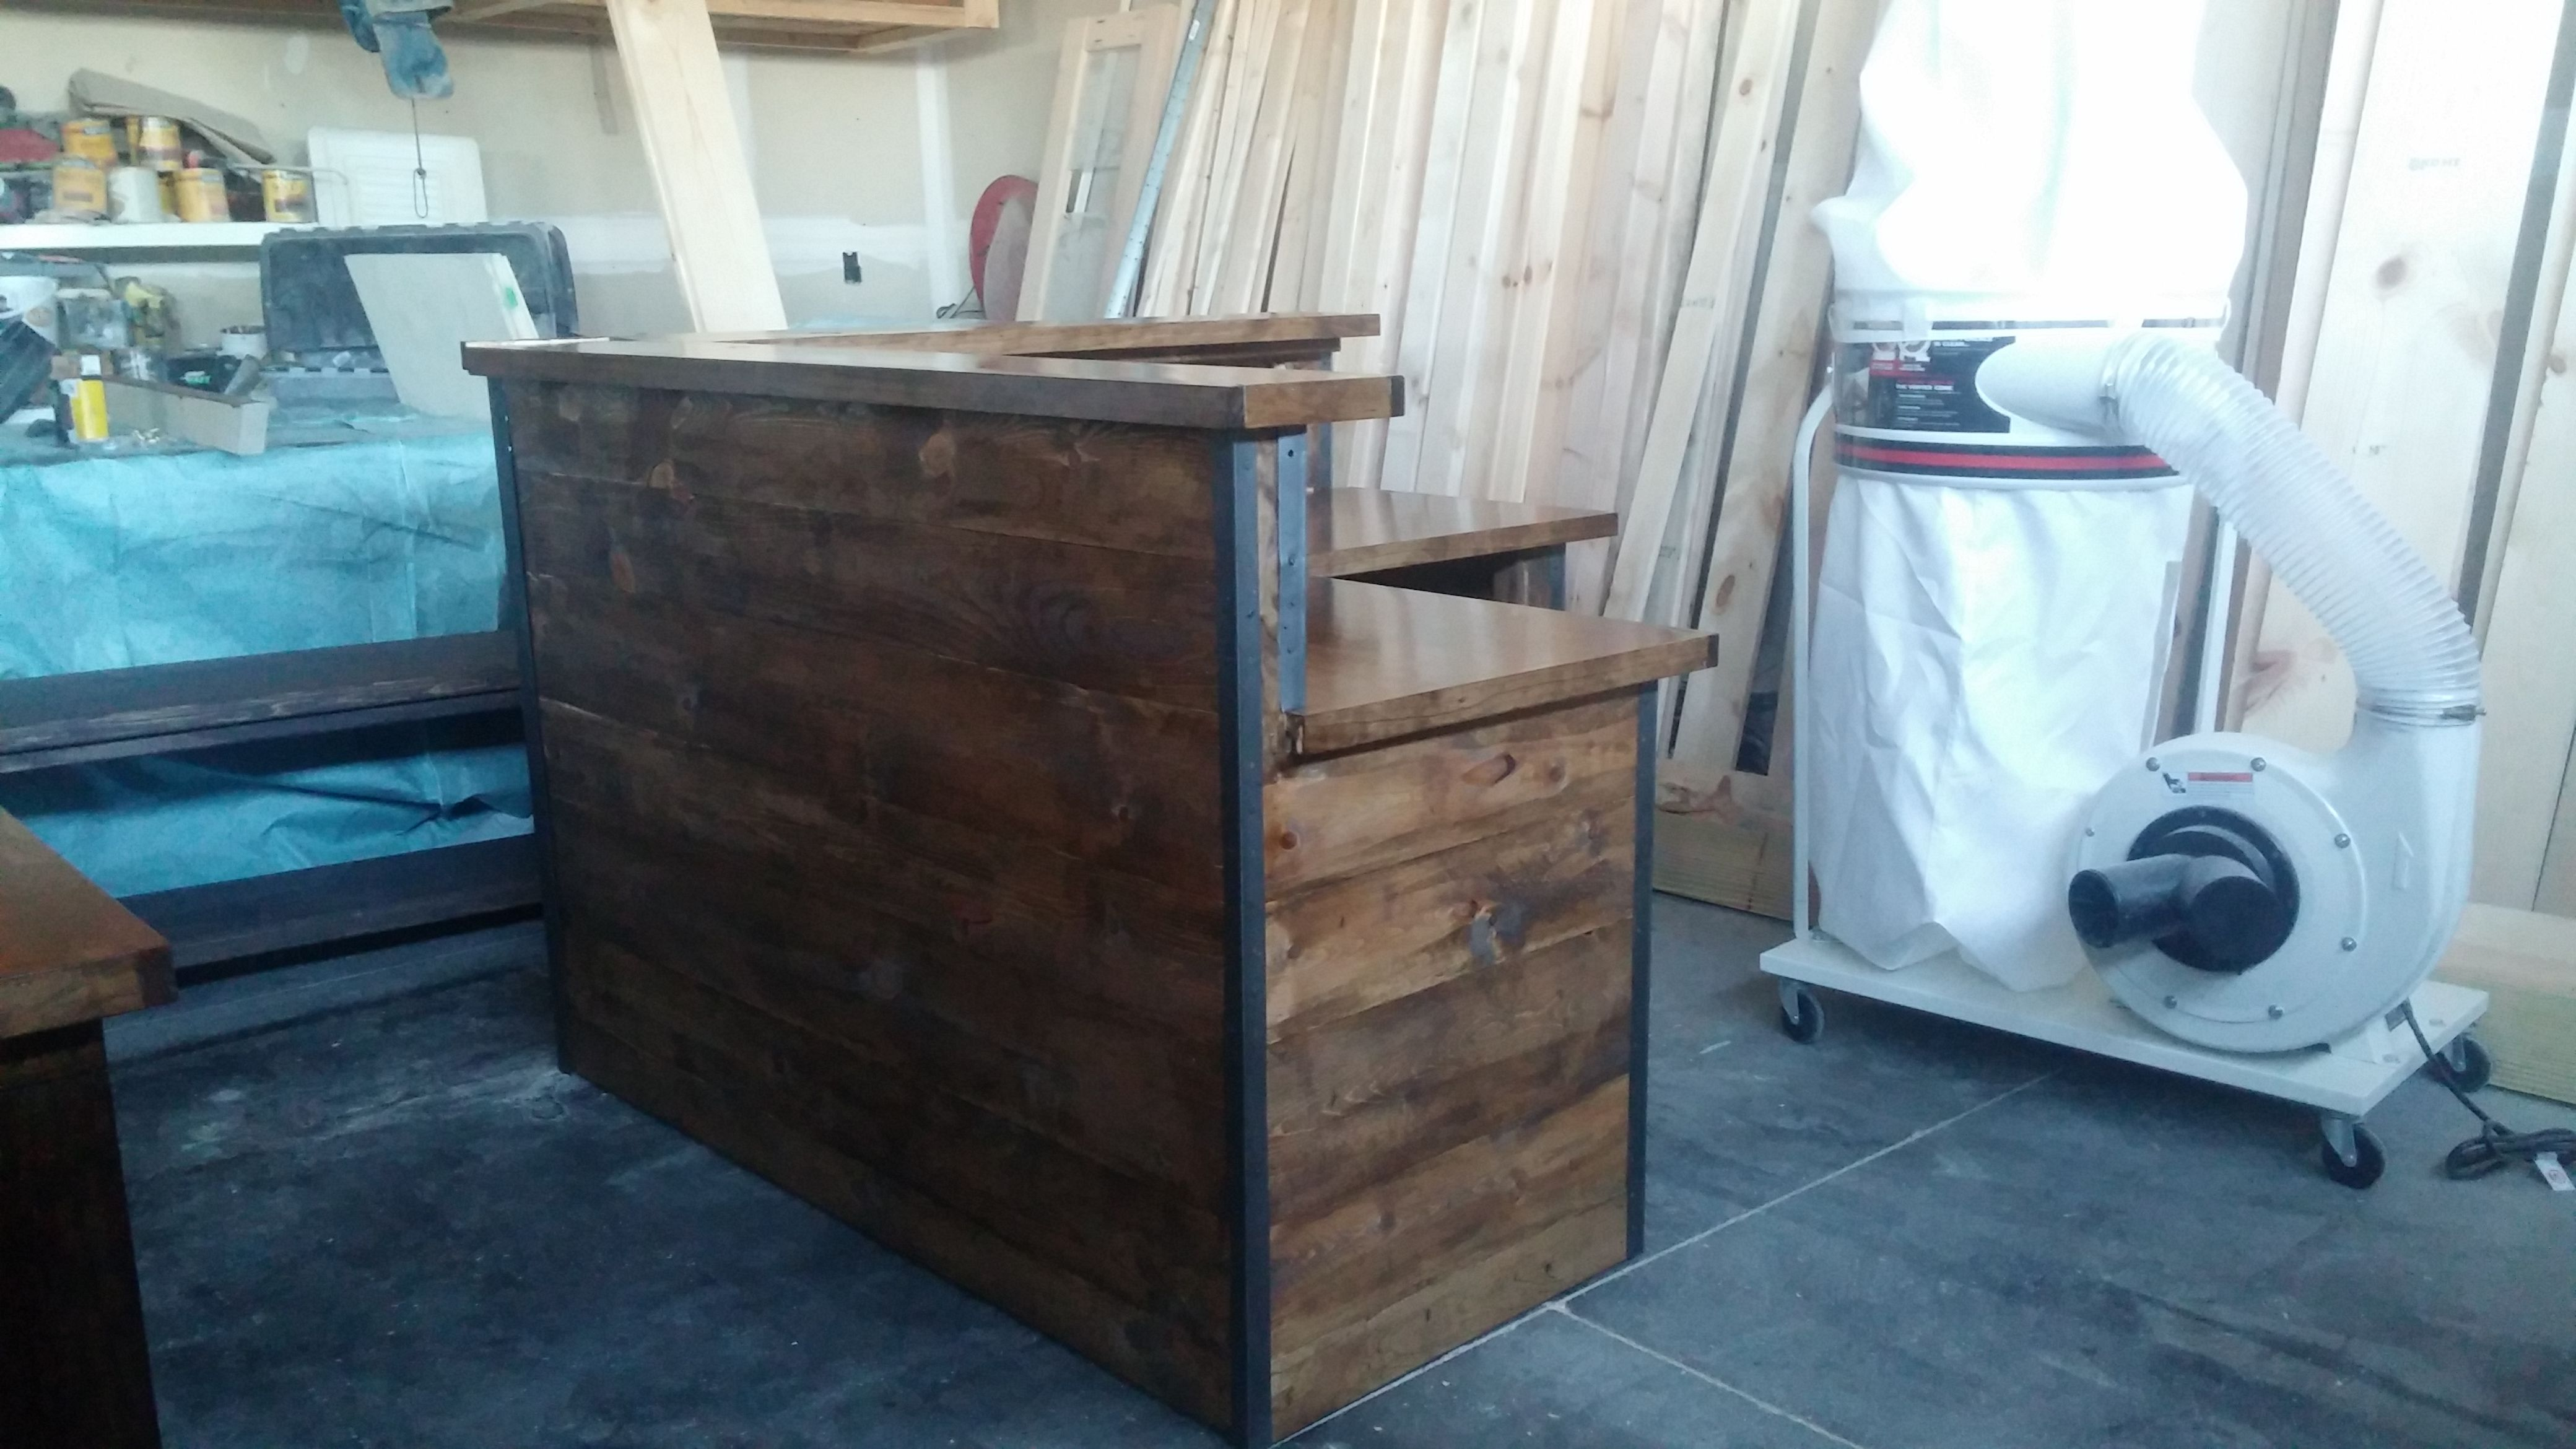 L Shaped Reception Desk Done In Rustic Facing With A Metal Edge Reception Desk Handcrafted Dining Table Desk